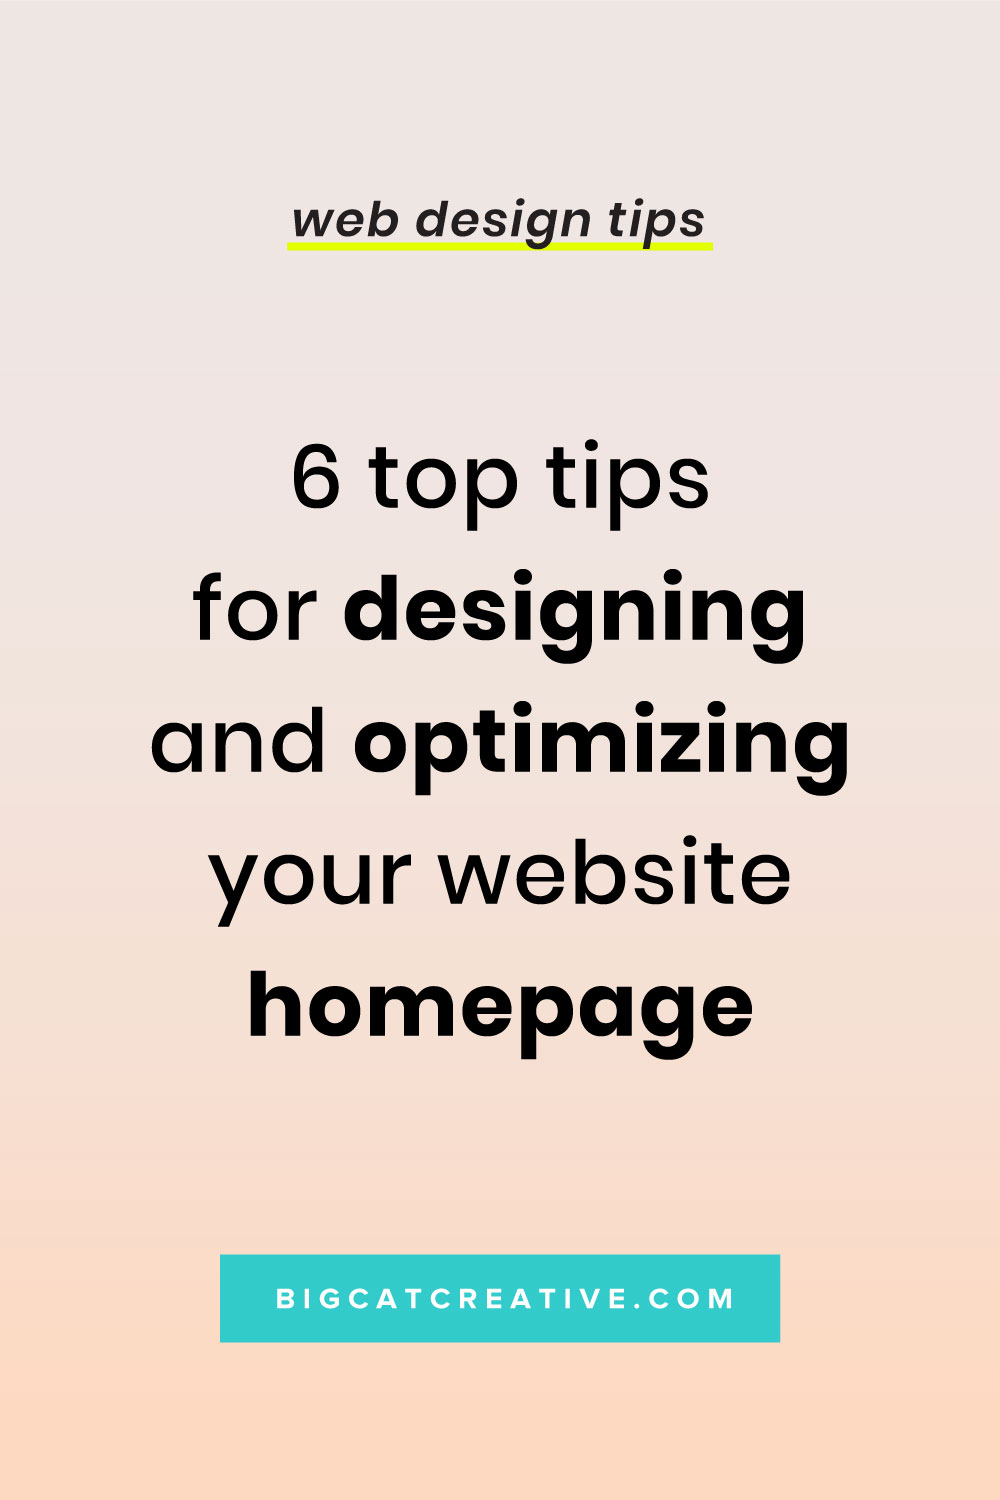 6 Top Tips for Designing & Optimizing Your Website Homepage by Big Cat Creative - Web Design Tips and Tutorials